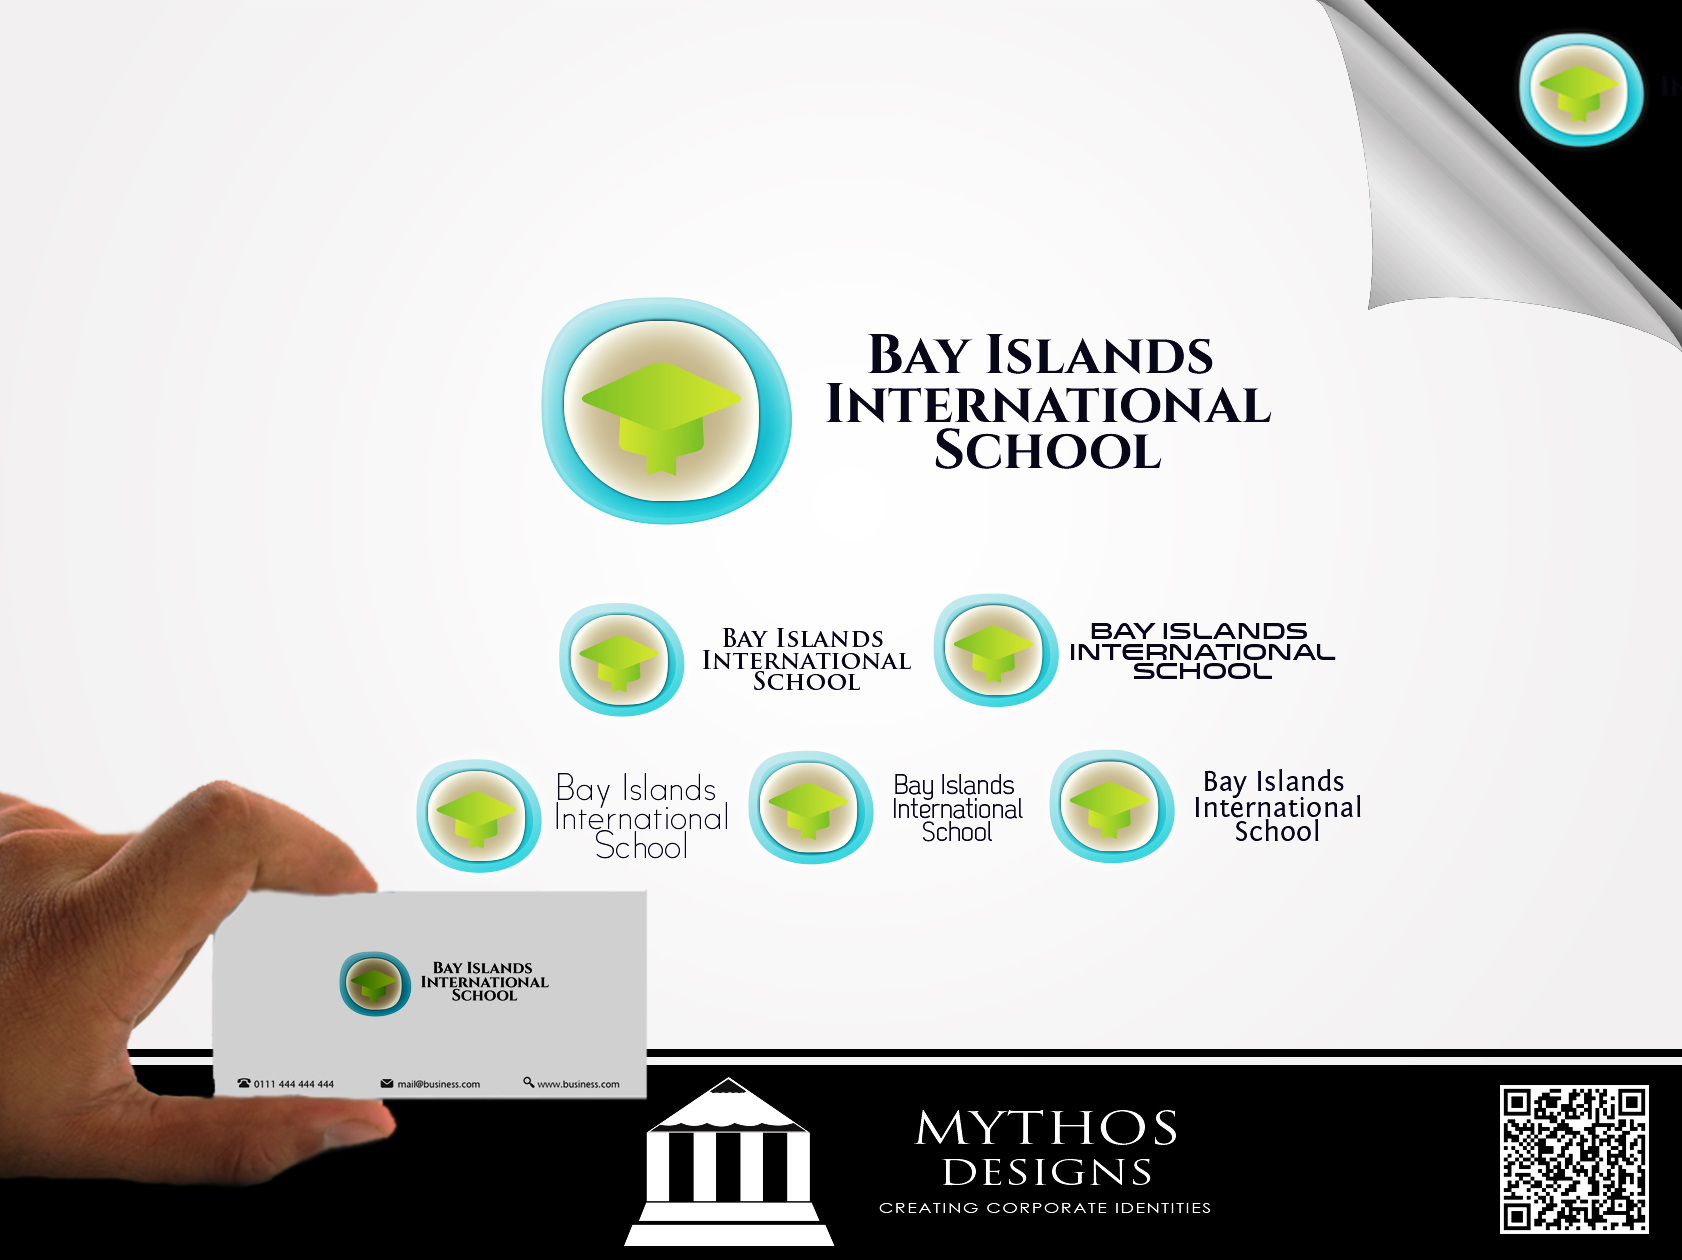 Logo Design by Mythos Designs - Entry No. 34 in the Logo Design Contest Creative Logo Design for Bay Islands International School.